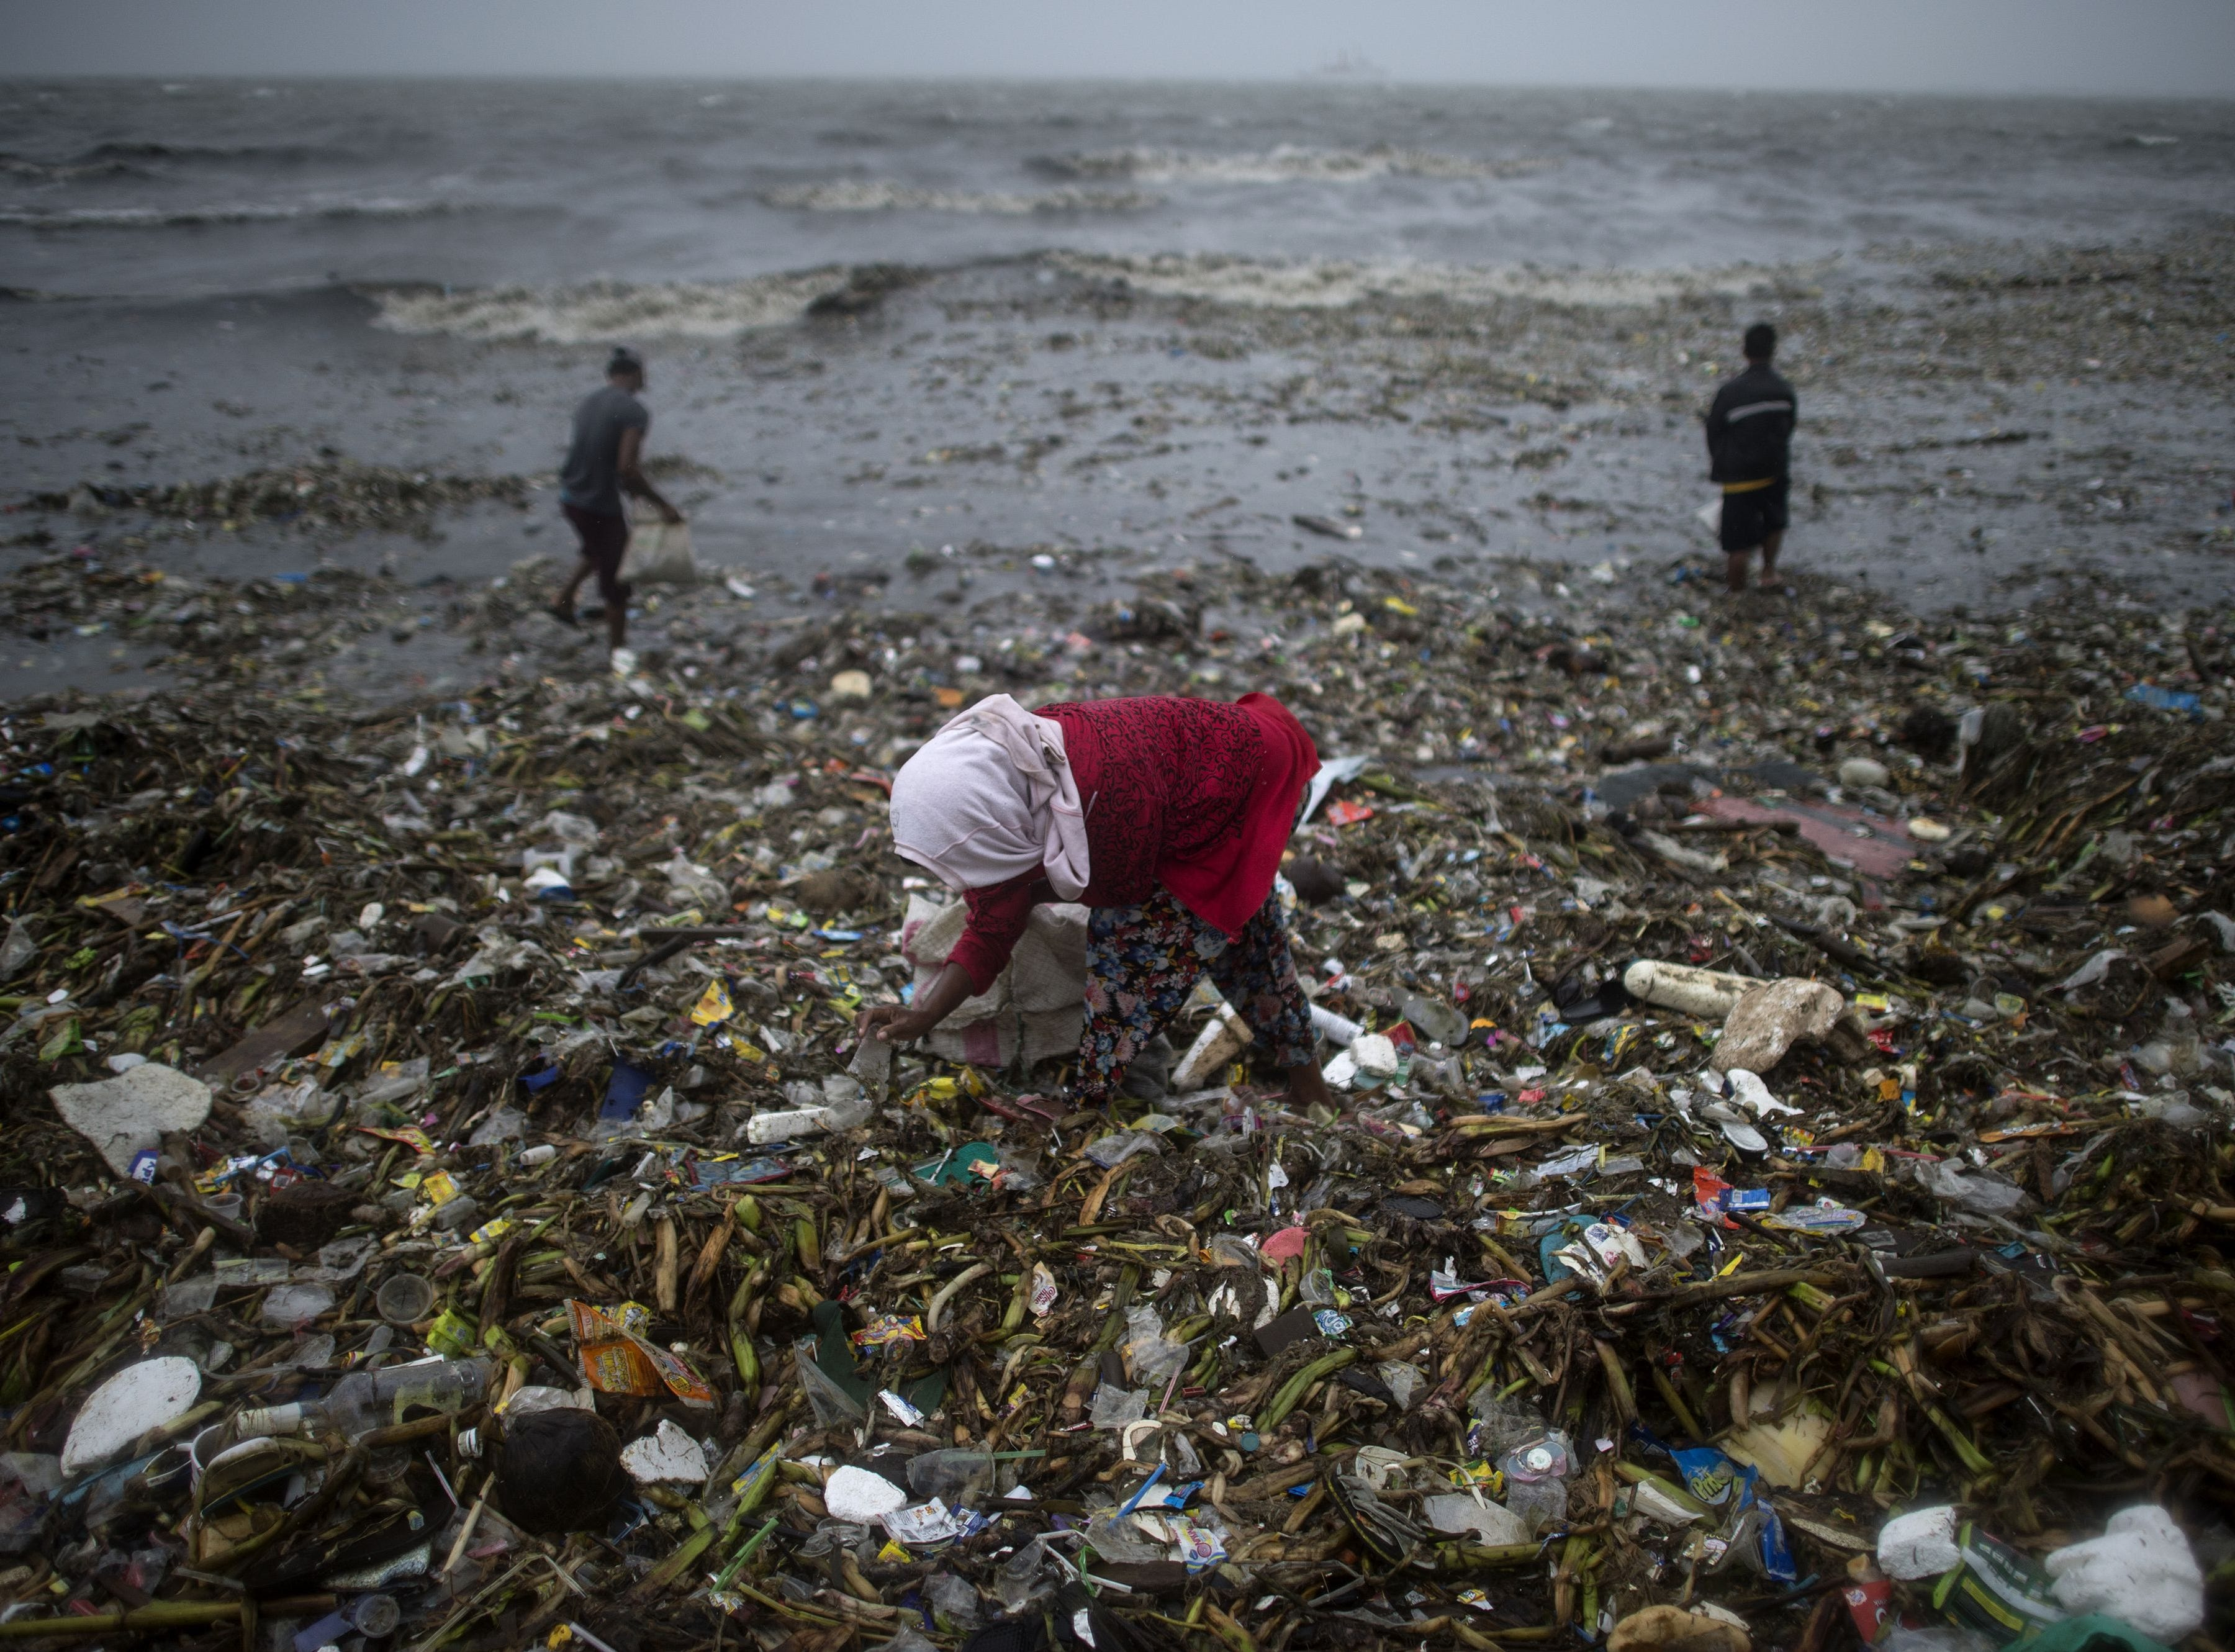 People collect recyclable materials washed ashore by strong waves caused by Super Typhoon Mangkhut at the Manila Bay on Sept. 15, 2018. Super Typhoon Mangkhut slammed into the northern Philippines, with violent winds and torrential rains, as authorities warned millions in its path of potentially heavy destruction.